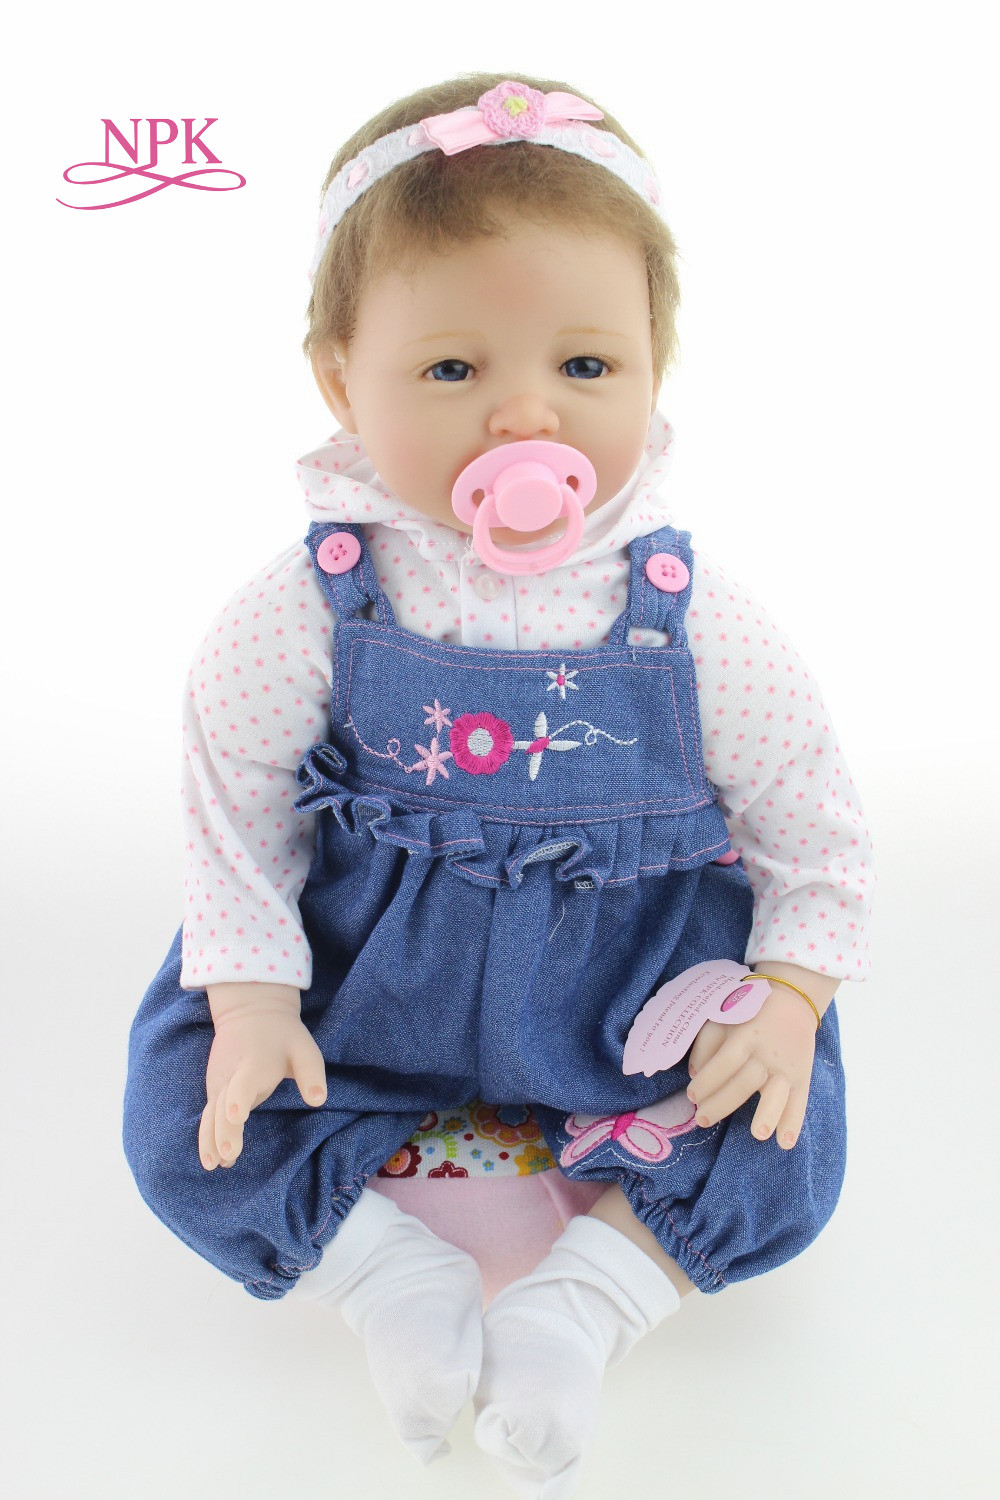 NPK 2255cm Alive Baby Reborn Dolls Handmade Silicone Girls Toddler Doll Lifelike Soft Vinyl Newborn Babydolls Toys for Children handmade adorable soft vinyl silicone reborn toddler princess girl baby alive doll toys with soft cotton body for children girls